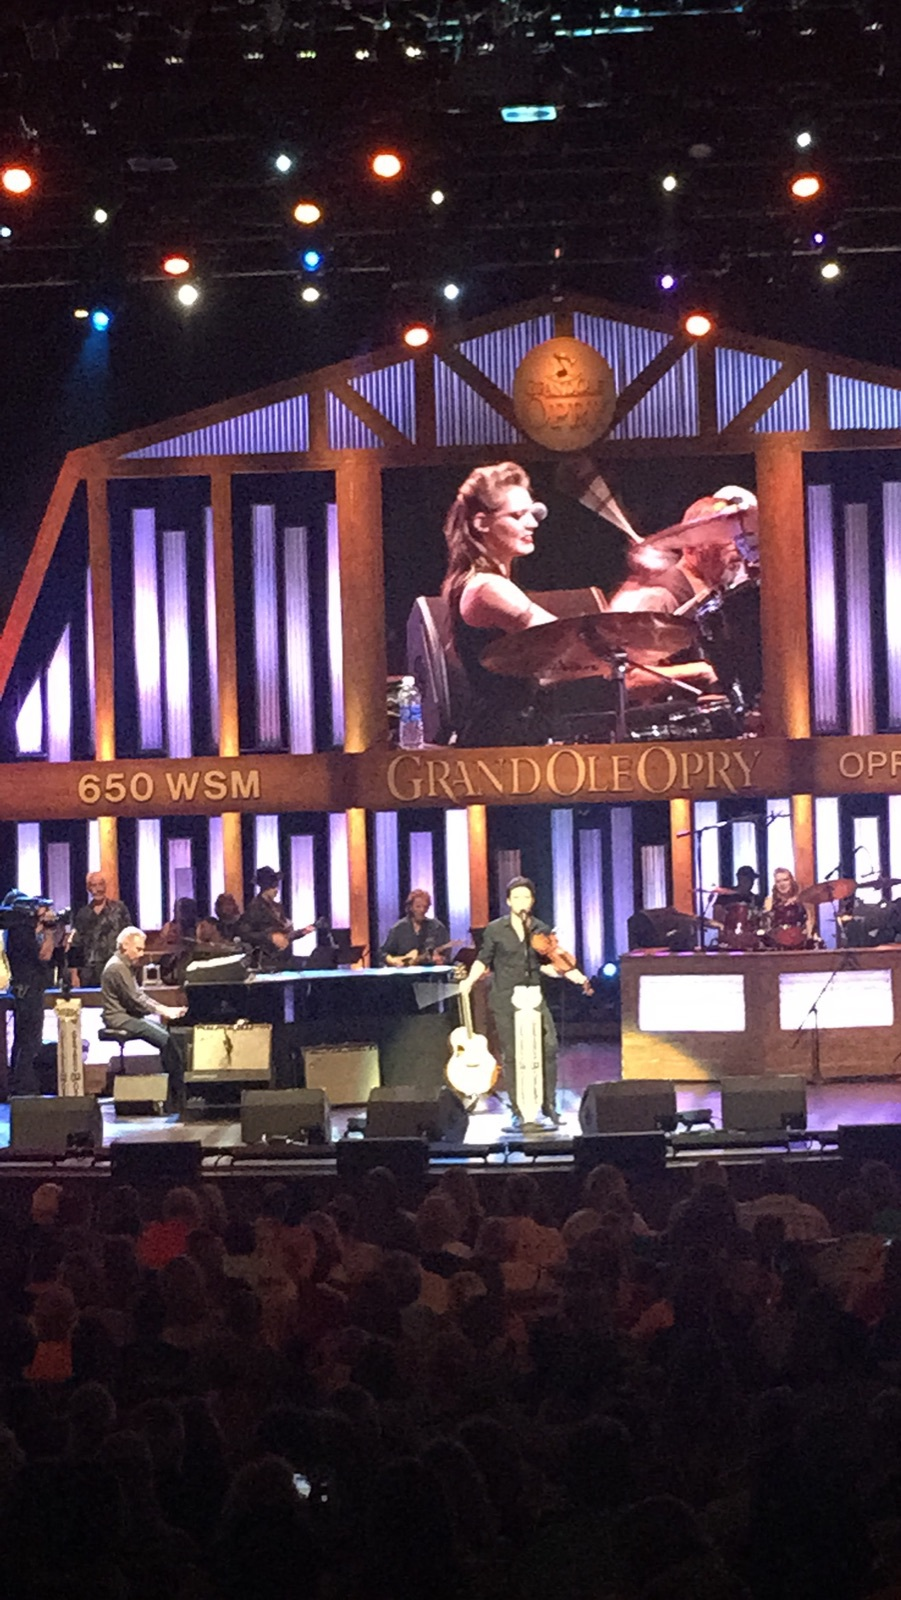 First Grand Ole Opry Performance